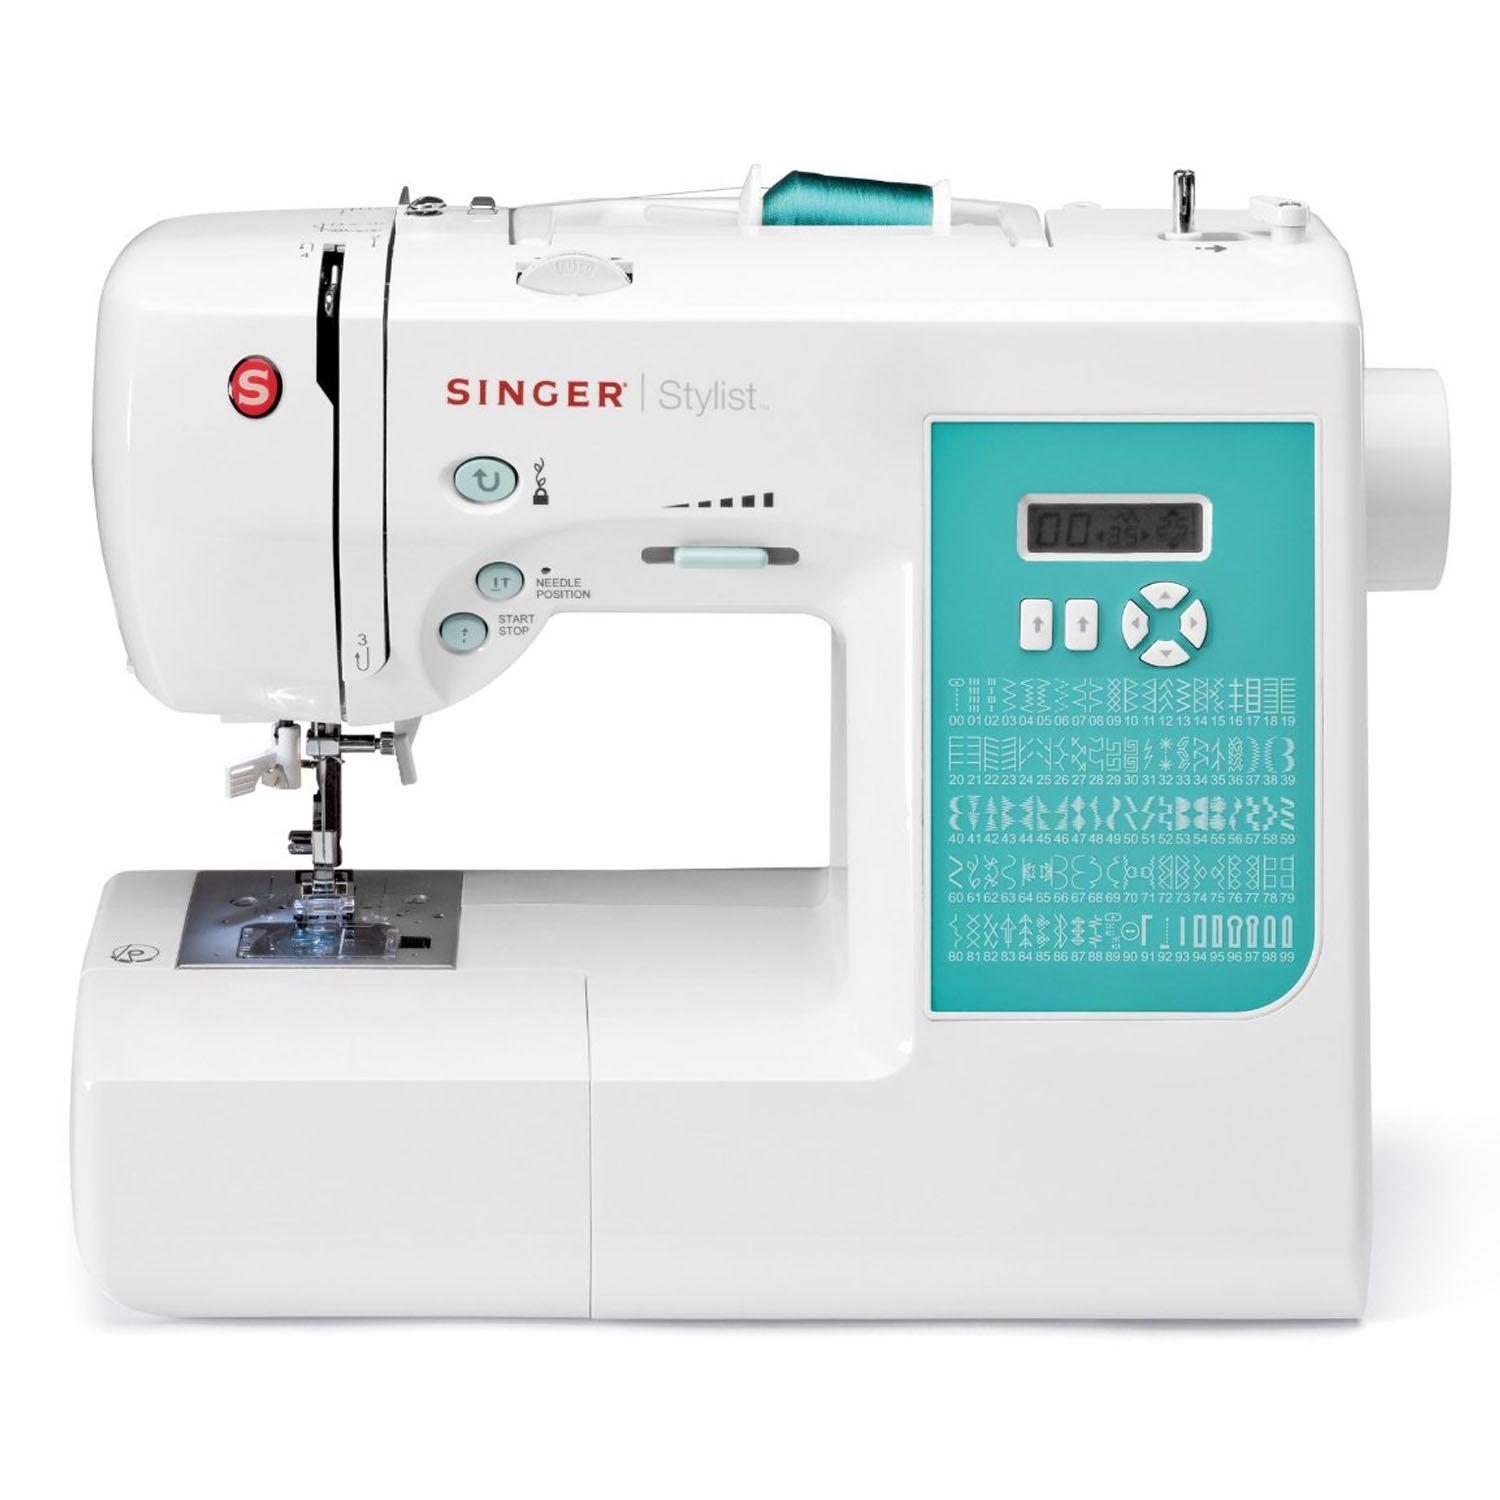 Singer 7258 vs 4423 | Computerized sewing machine, Sewing ...